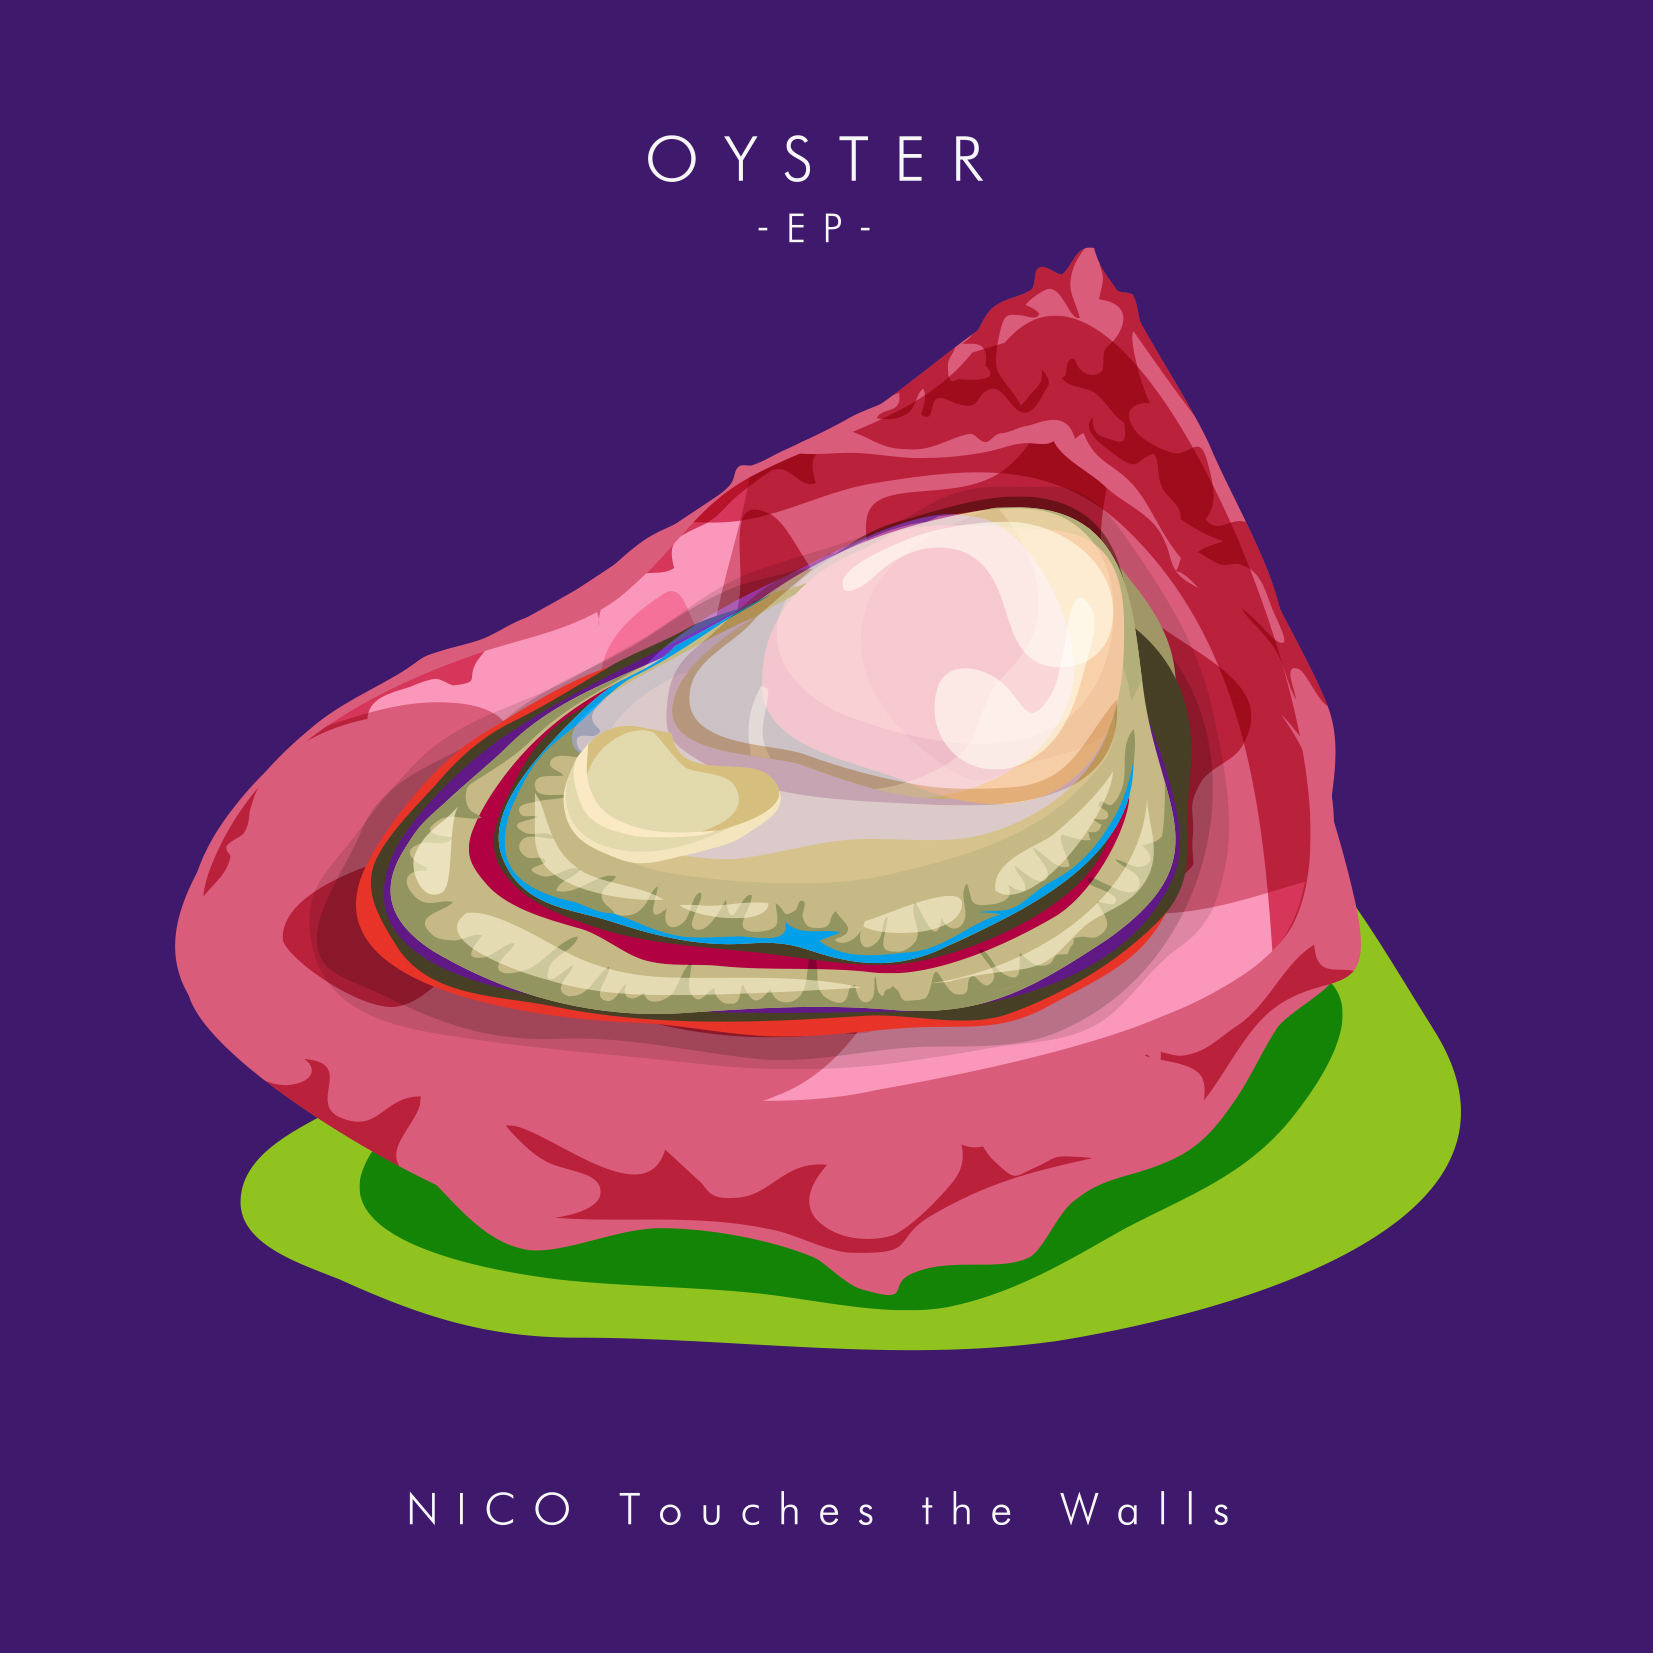 『OYSTER -EP-』